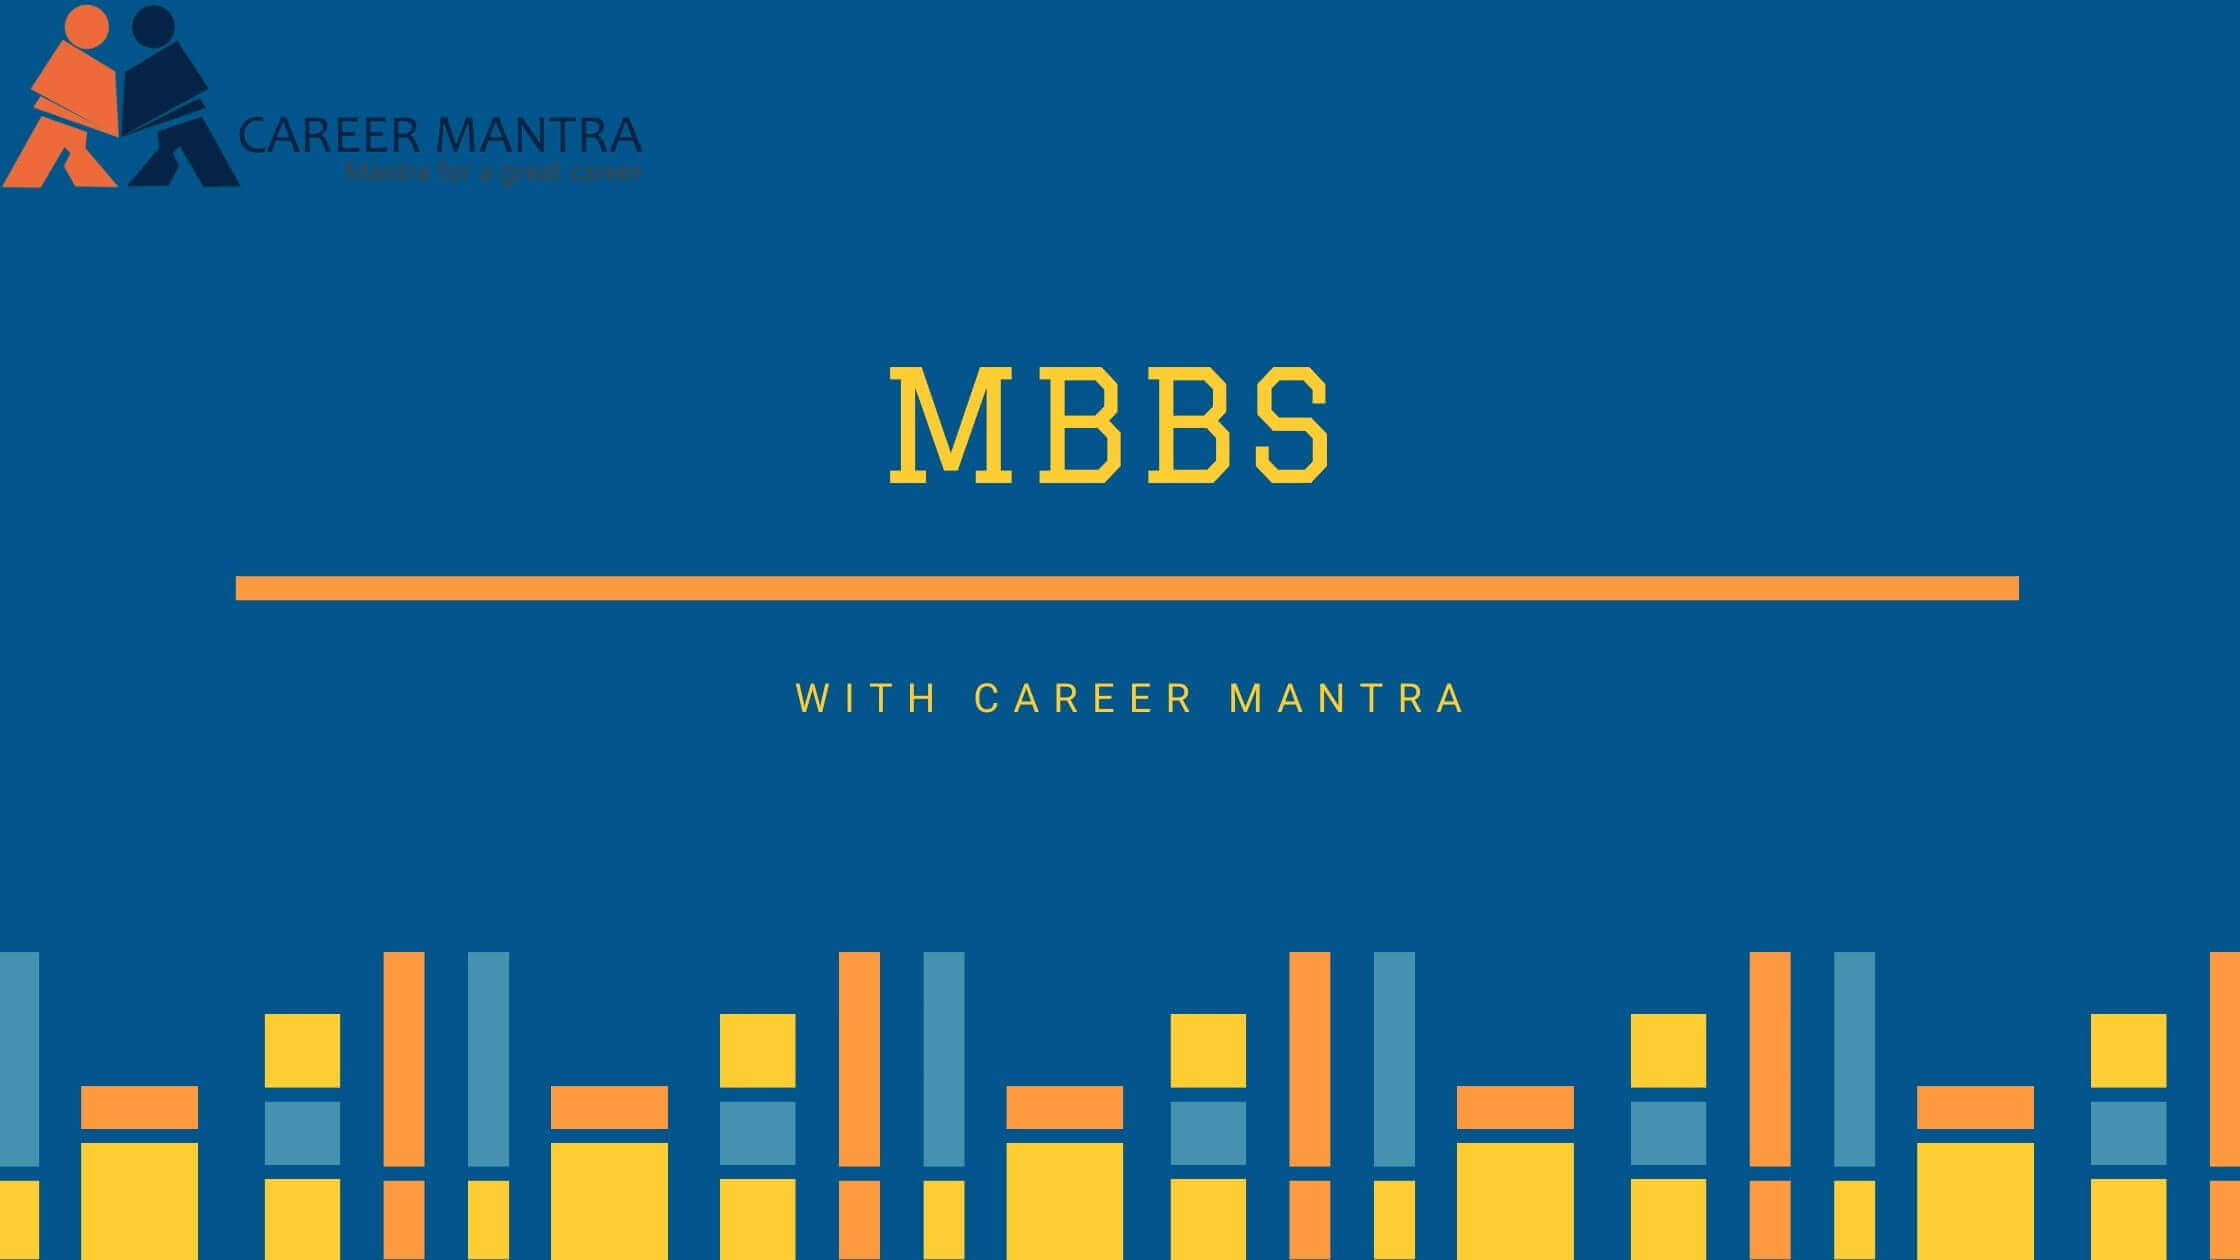 MBBS as best career option   Chosen for Excellence   2020